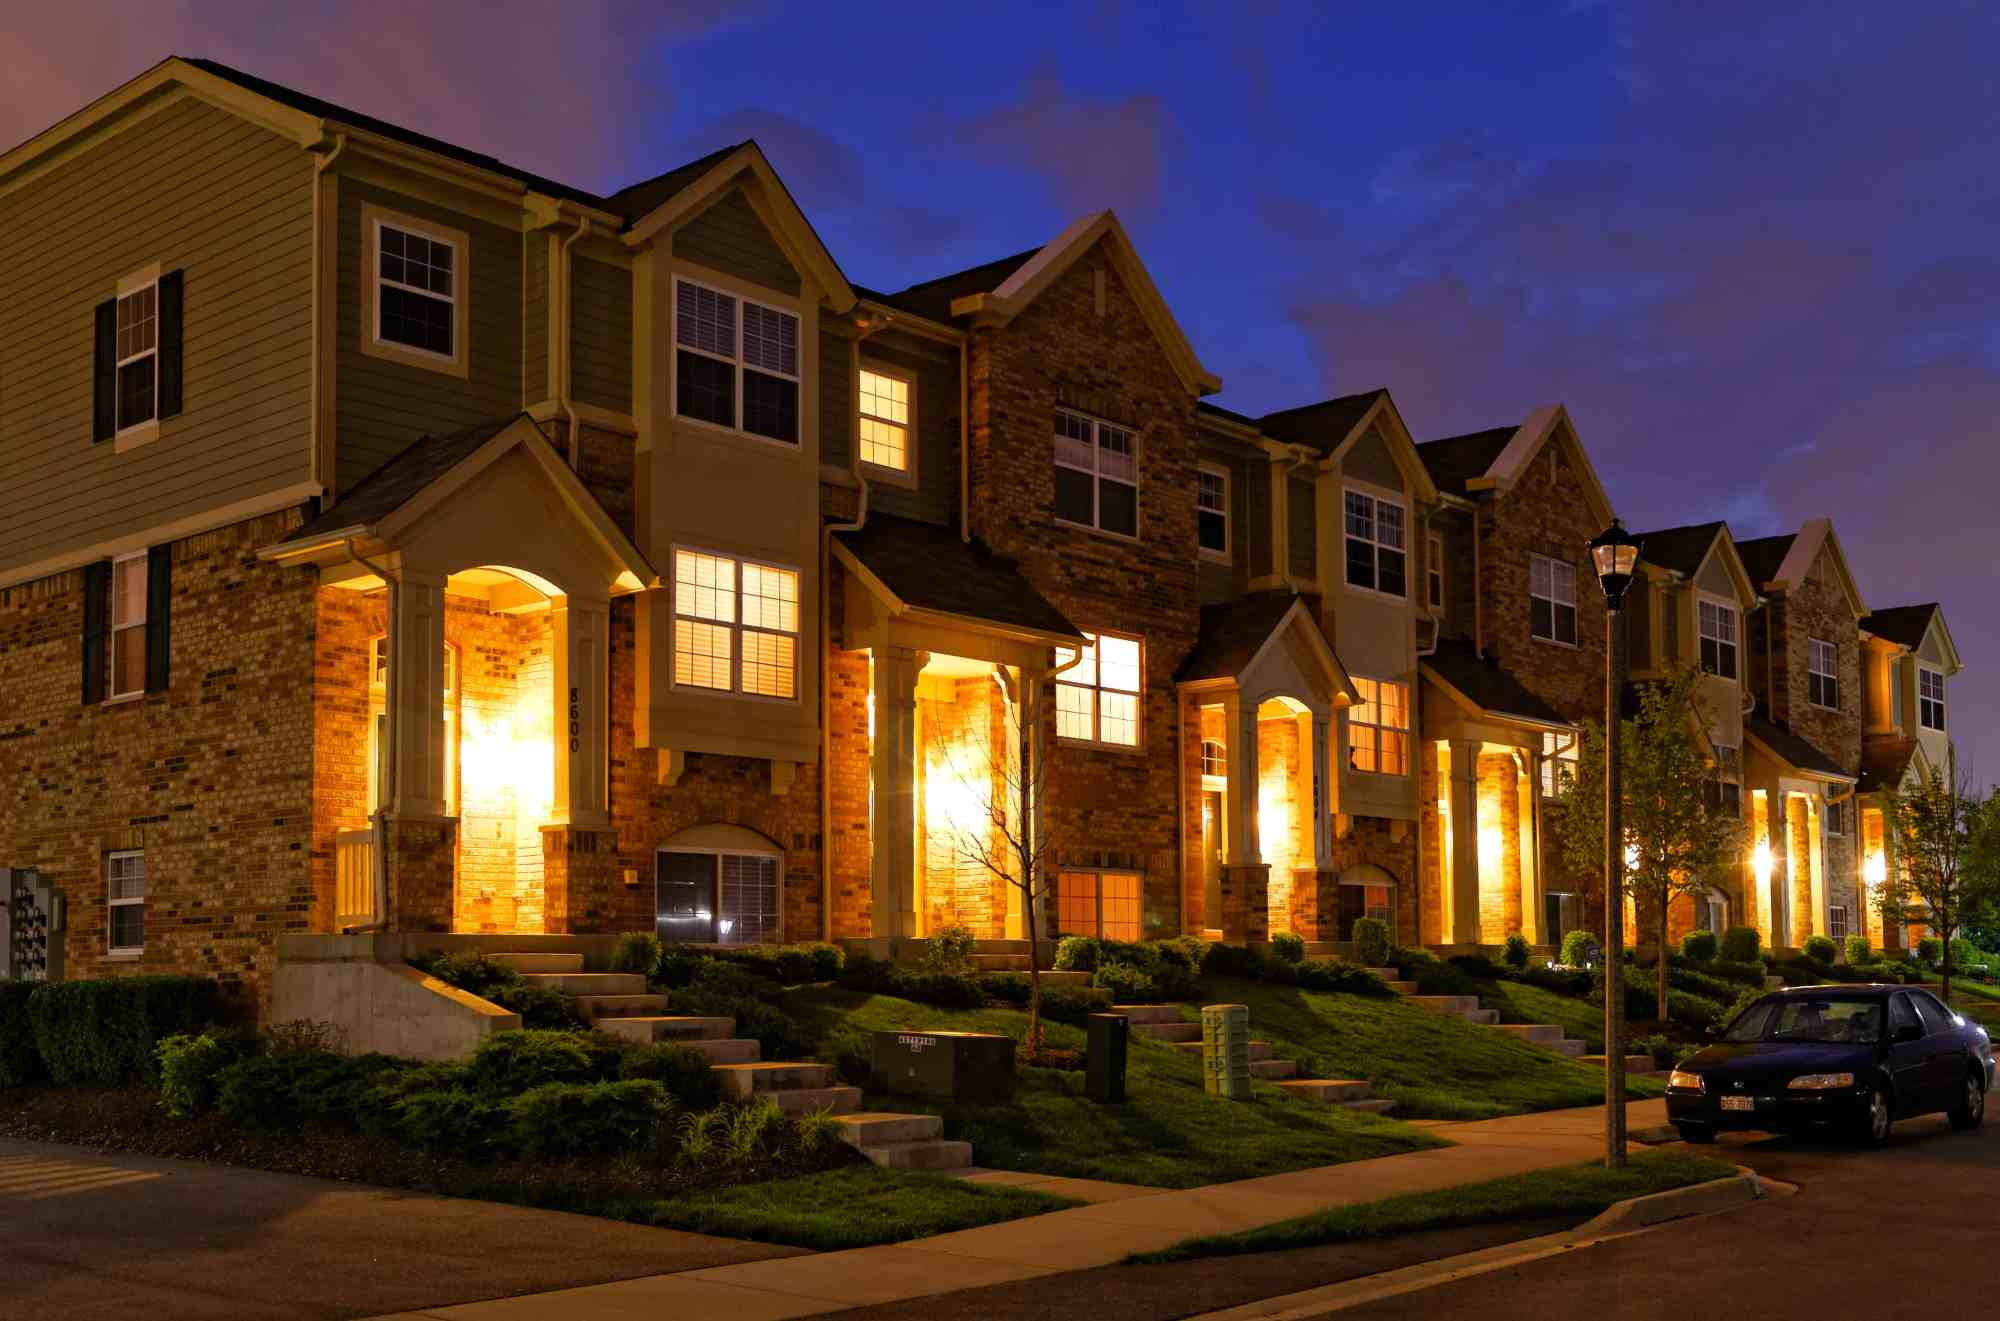 hight resolution of 4 benefits of installing outdoor lighting in new jersey